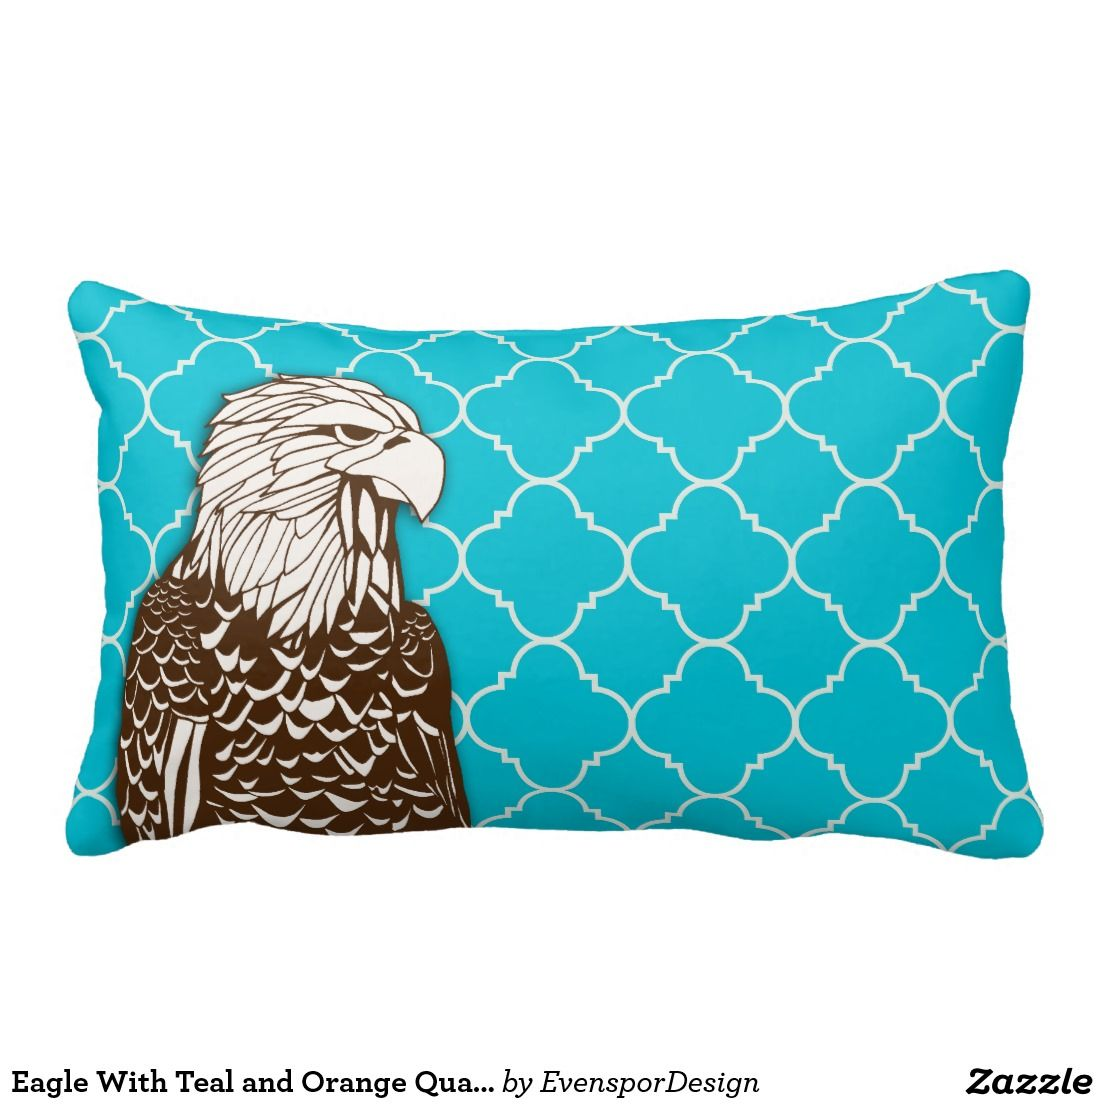 Eagle With Teal and Orange Quatrefoils Throw Pillows